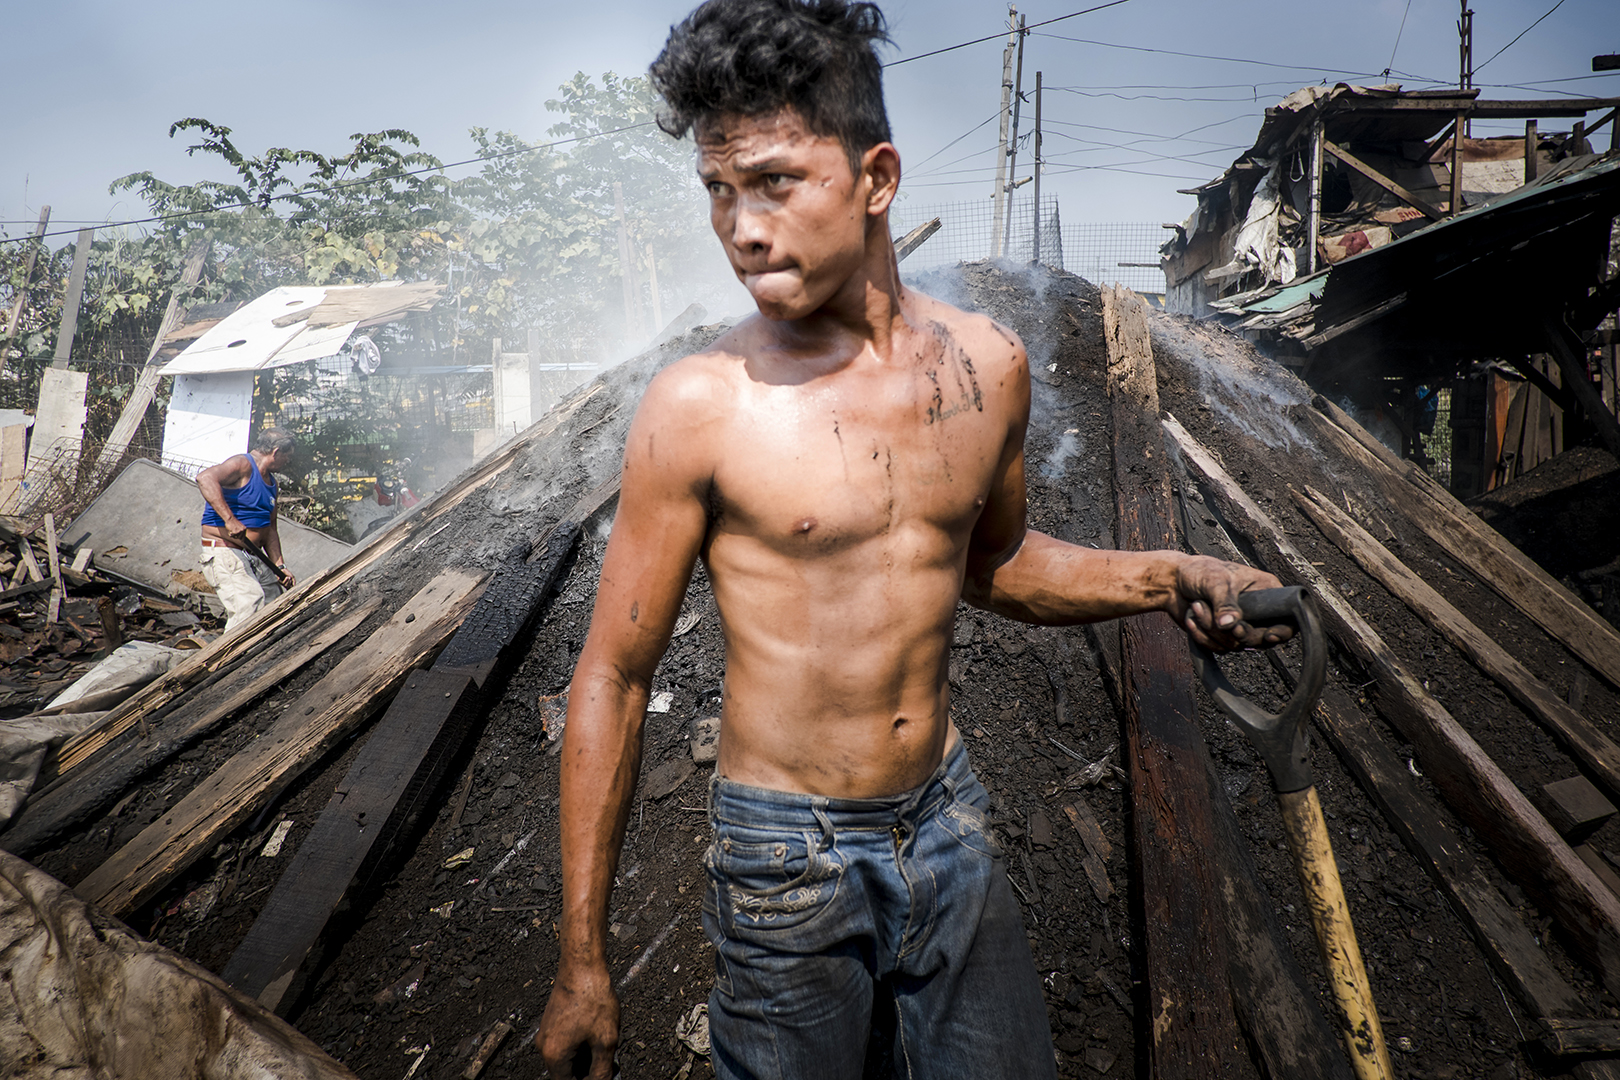 Andrei (20) lives in a dumpsite area of Malabon, one of the poorest and most dangerous slums in Metro Manila. He started working in a community produced coal business at the age of 14. He works 7 days a week and earns around 3 euro per day. It takes 2 weeks to prepare coal ready for sale; employees are paid only when everything is sold. Malabon, Metro Manila, 2017